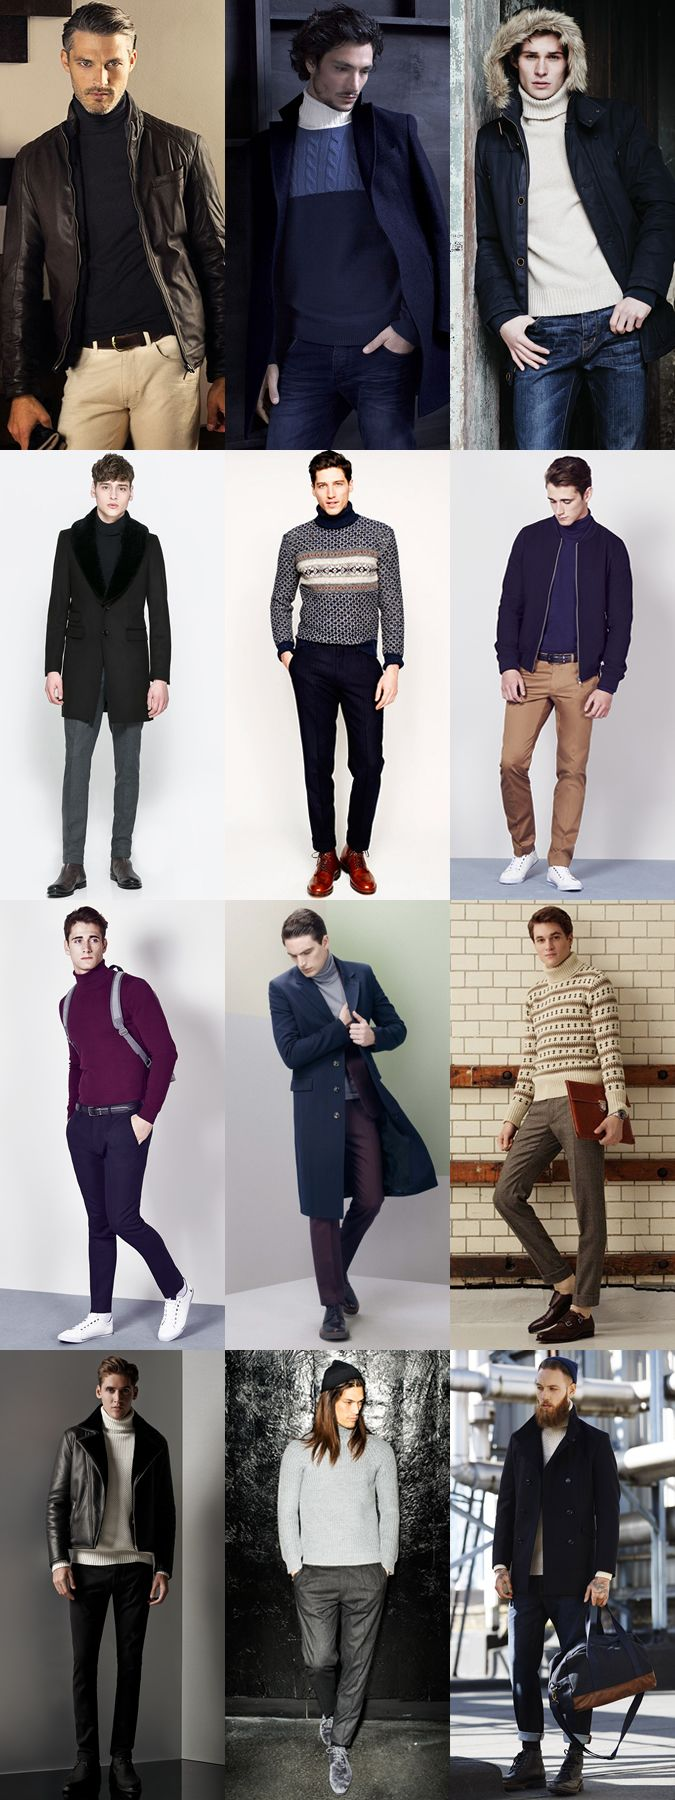 Ways To Wear Men's Roll Neck Trend in 2014 Autumn/Winter: as Casual/Smart Casual Lookbook Inspiration